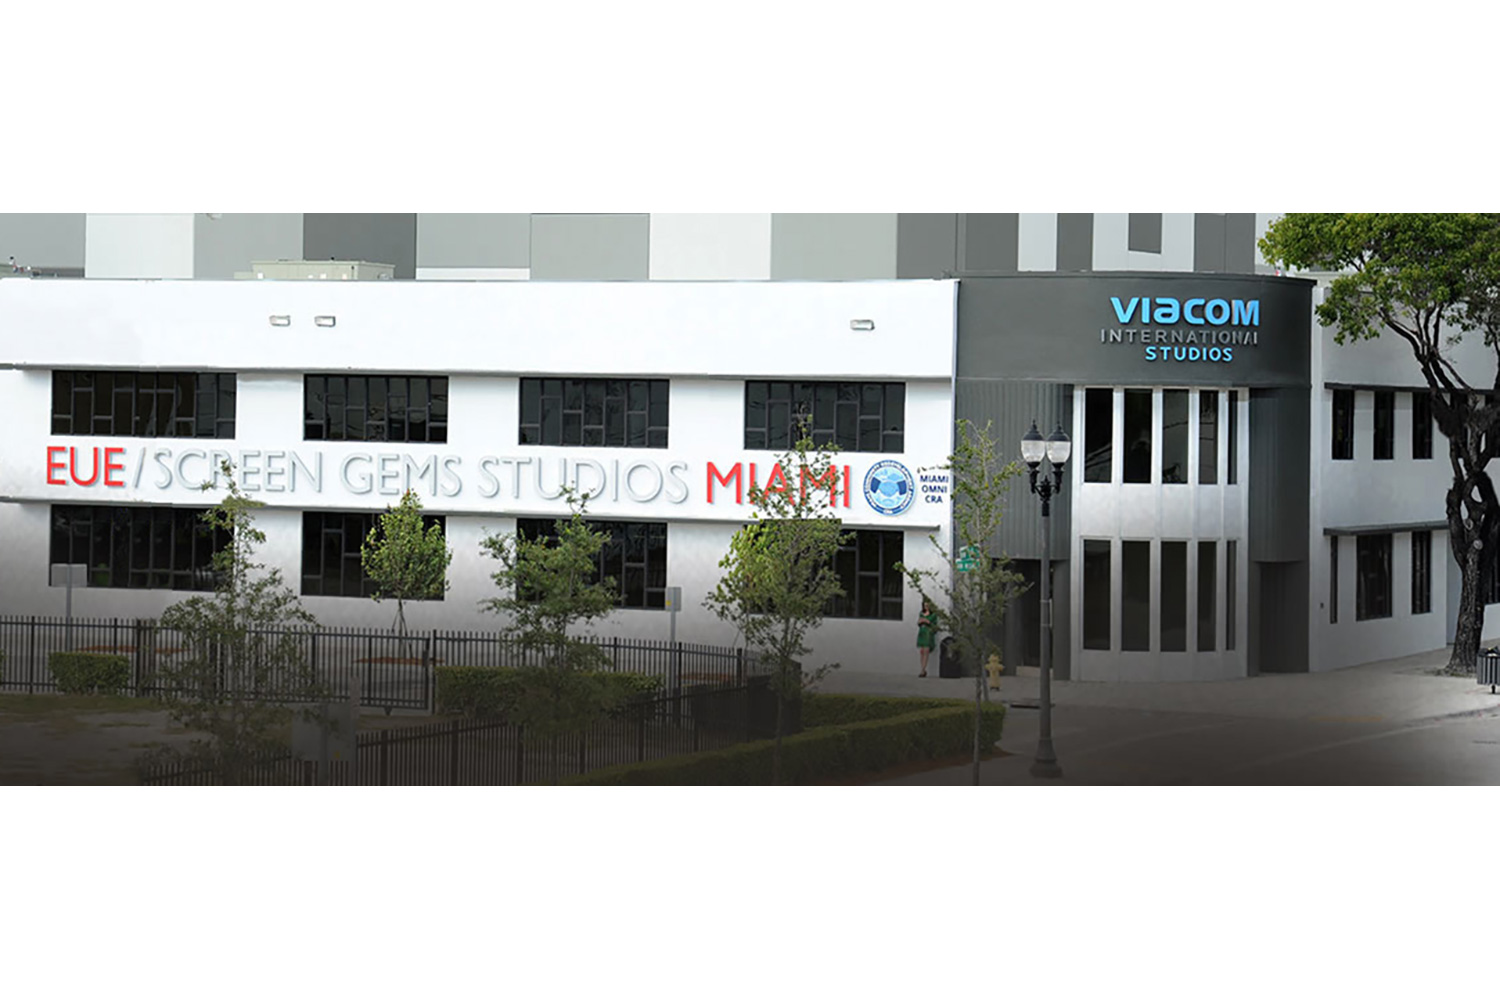 Viacom International/EUE/Screen Gems Studios recently completed construction on an 88,000 sq. ft. studio complex in Miami. WSDG was reached for an intensive feasibility study, cost/benefit analysis, and AV Systems Integration. Exterior 1